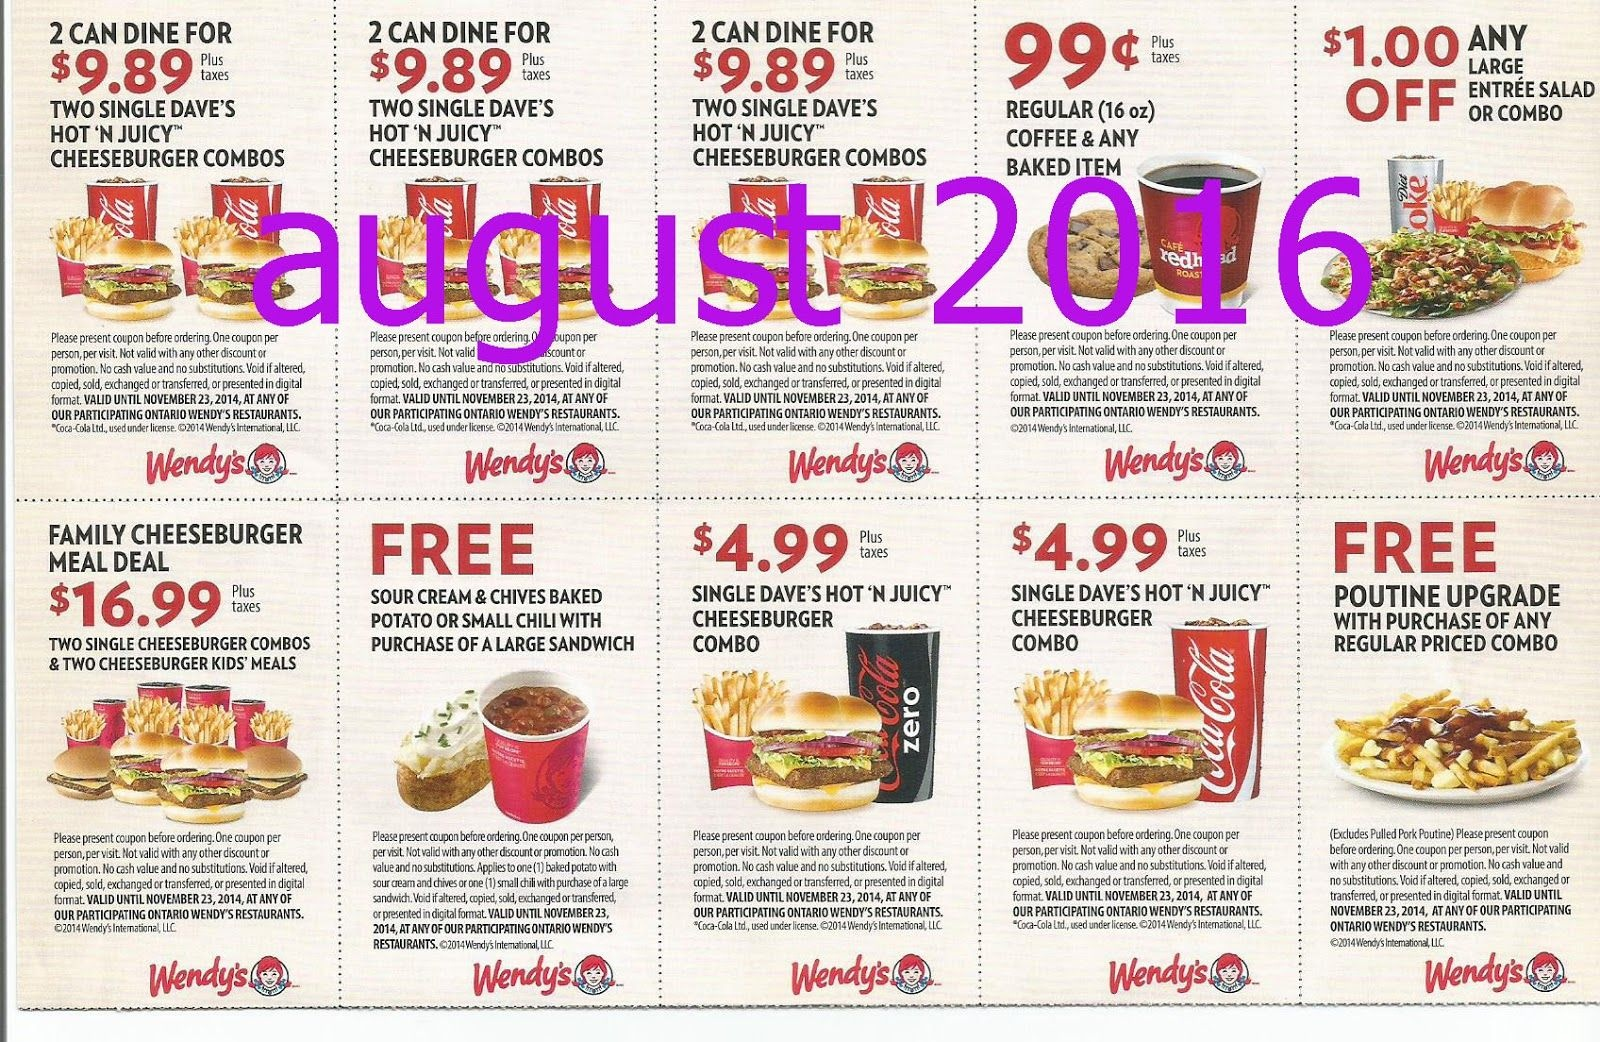 Free Printable Coupons: Wendys Coupons | Fast Food Coupons | Wendys - Free Printable Coupons 2014